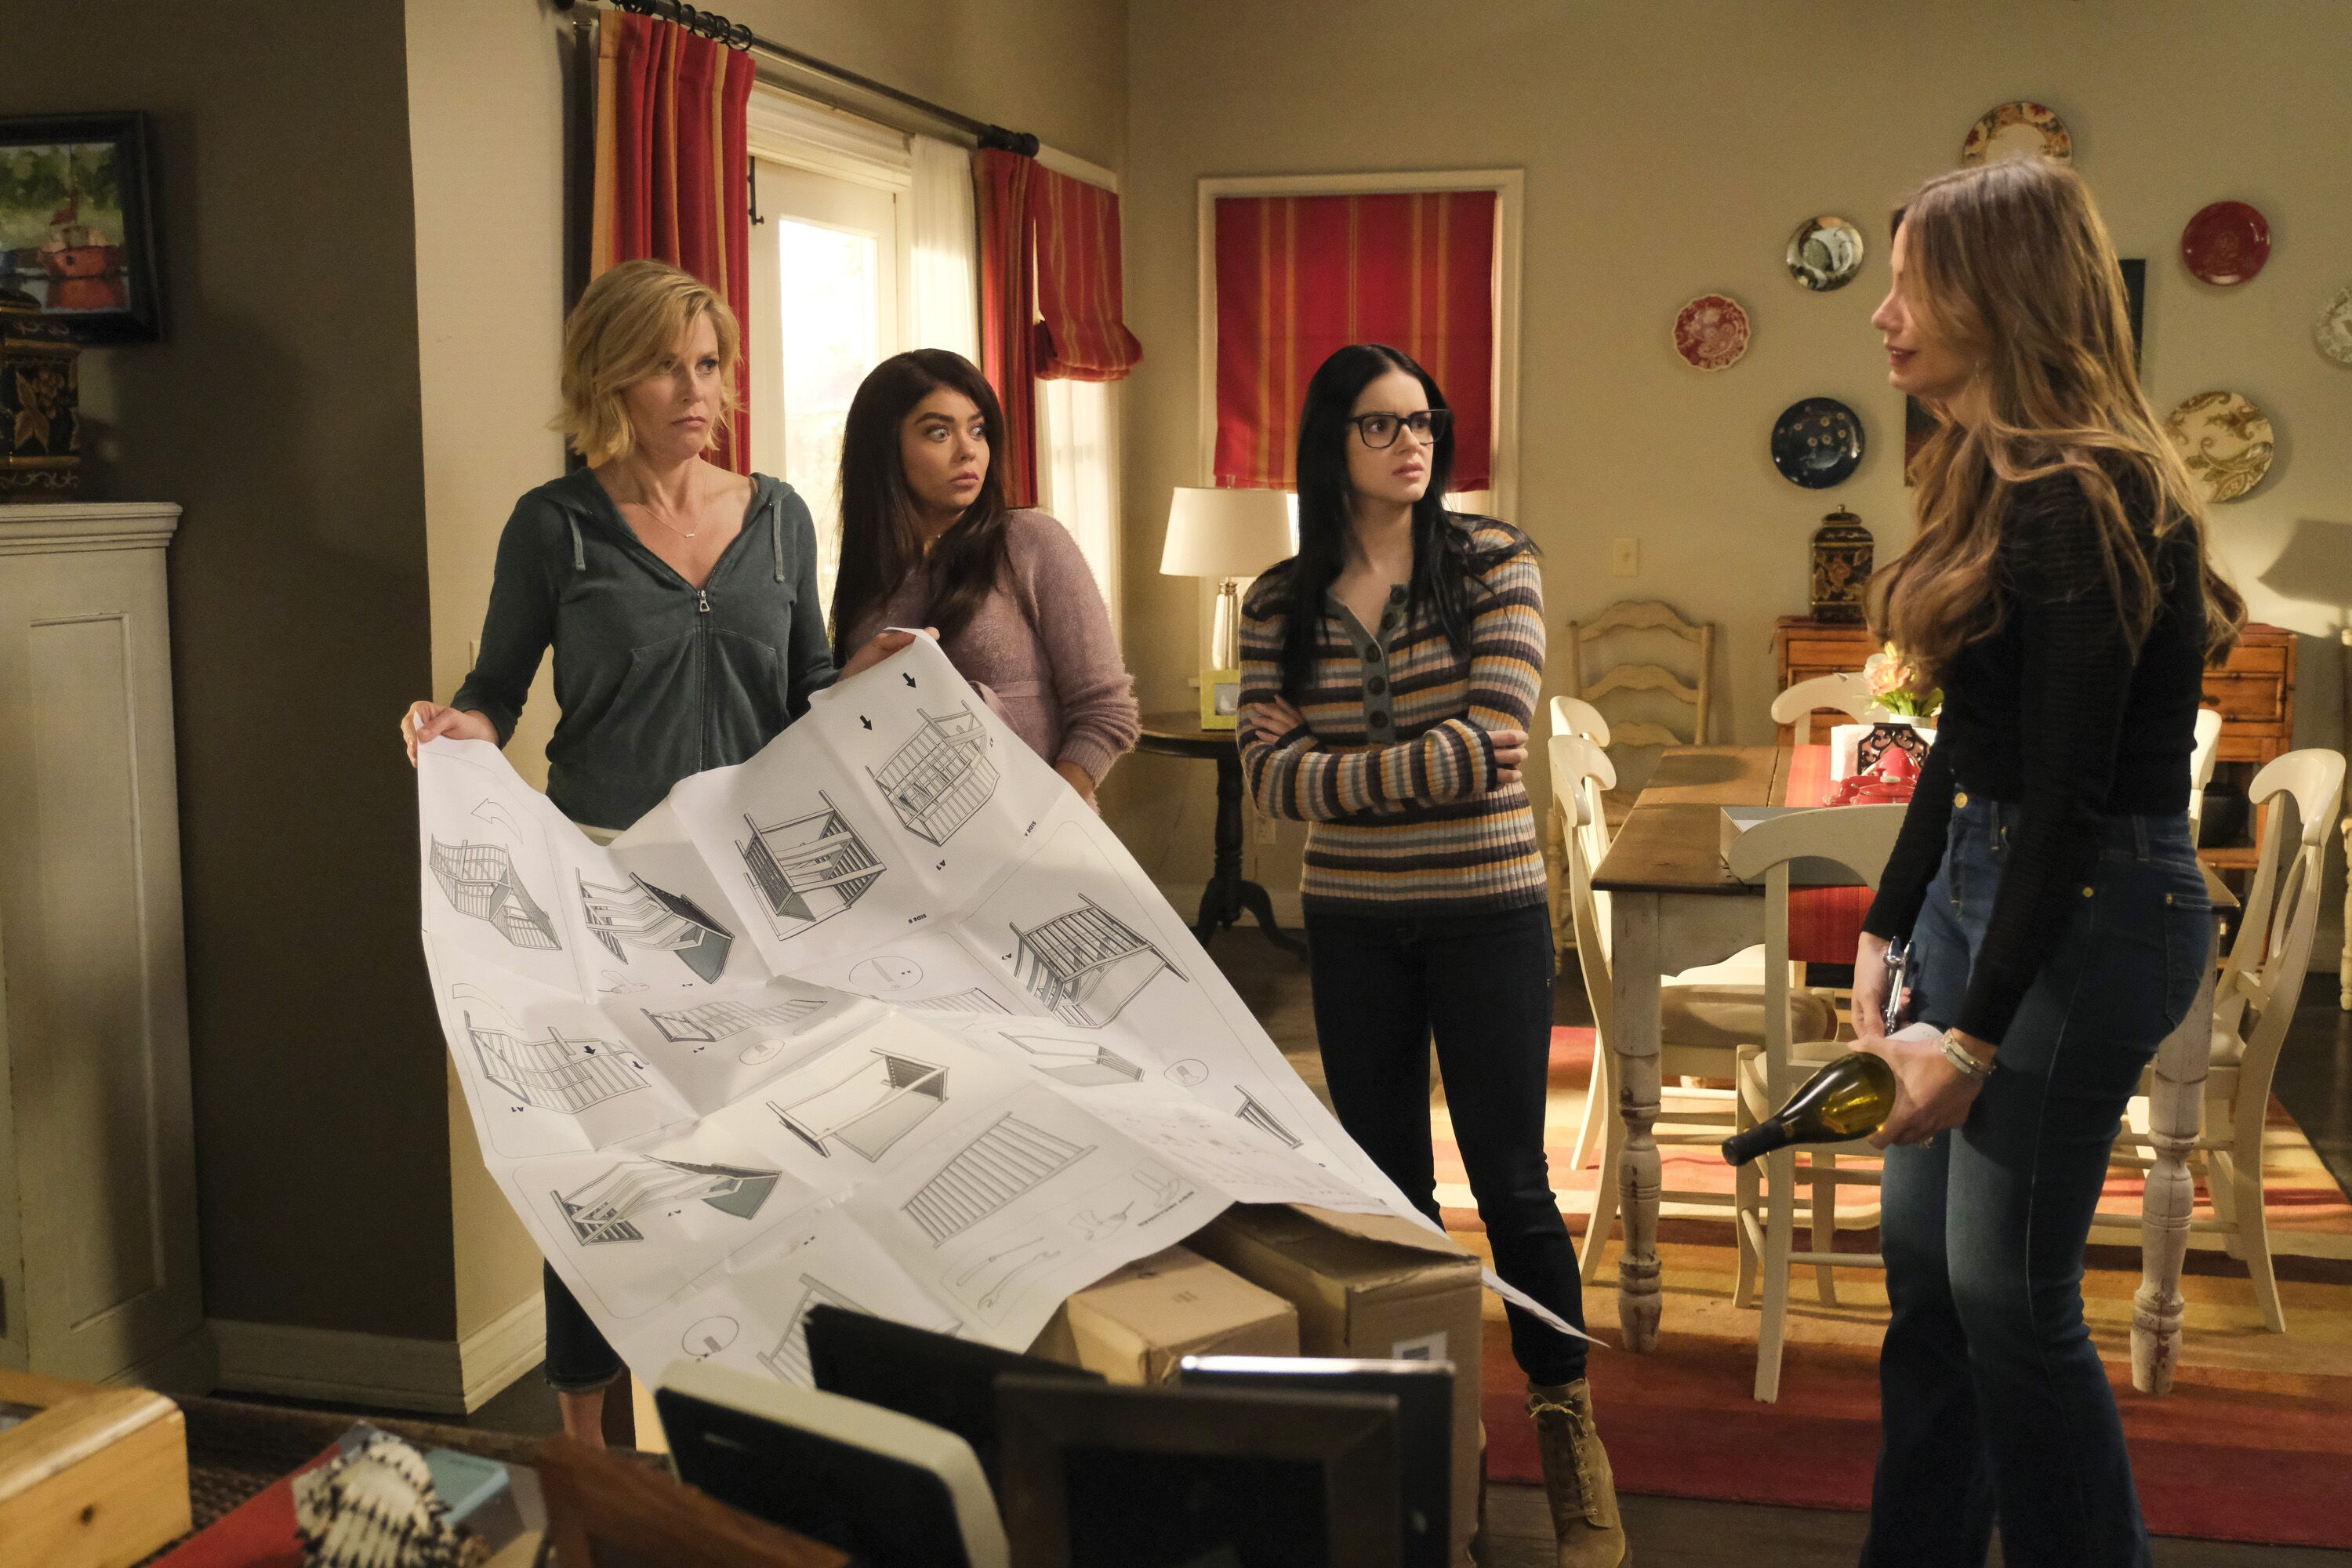 How to watch Modern Family Season 10, Episode 17 live online